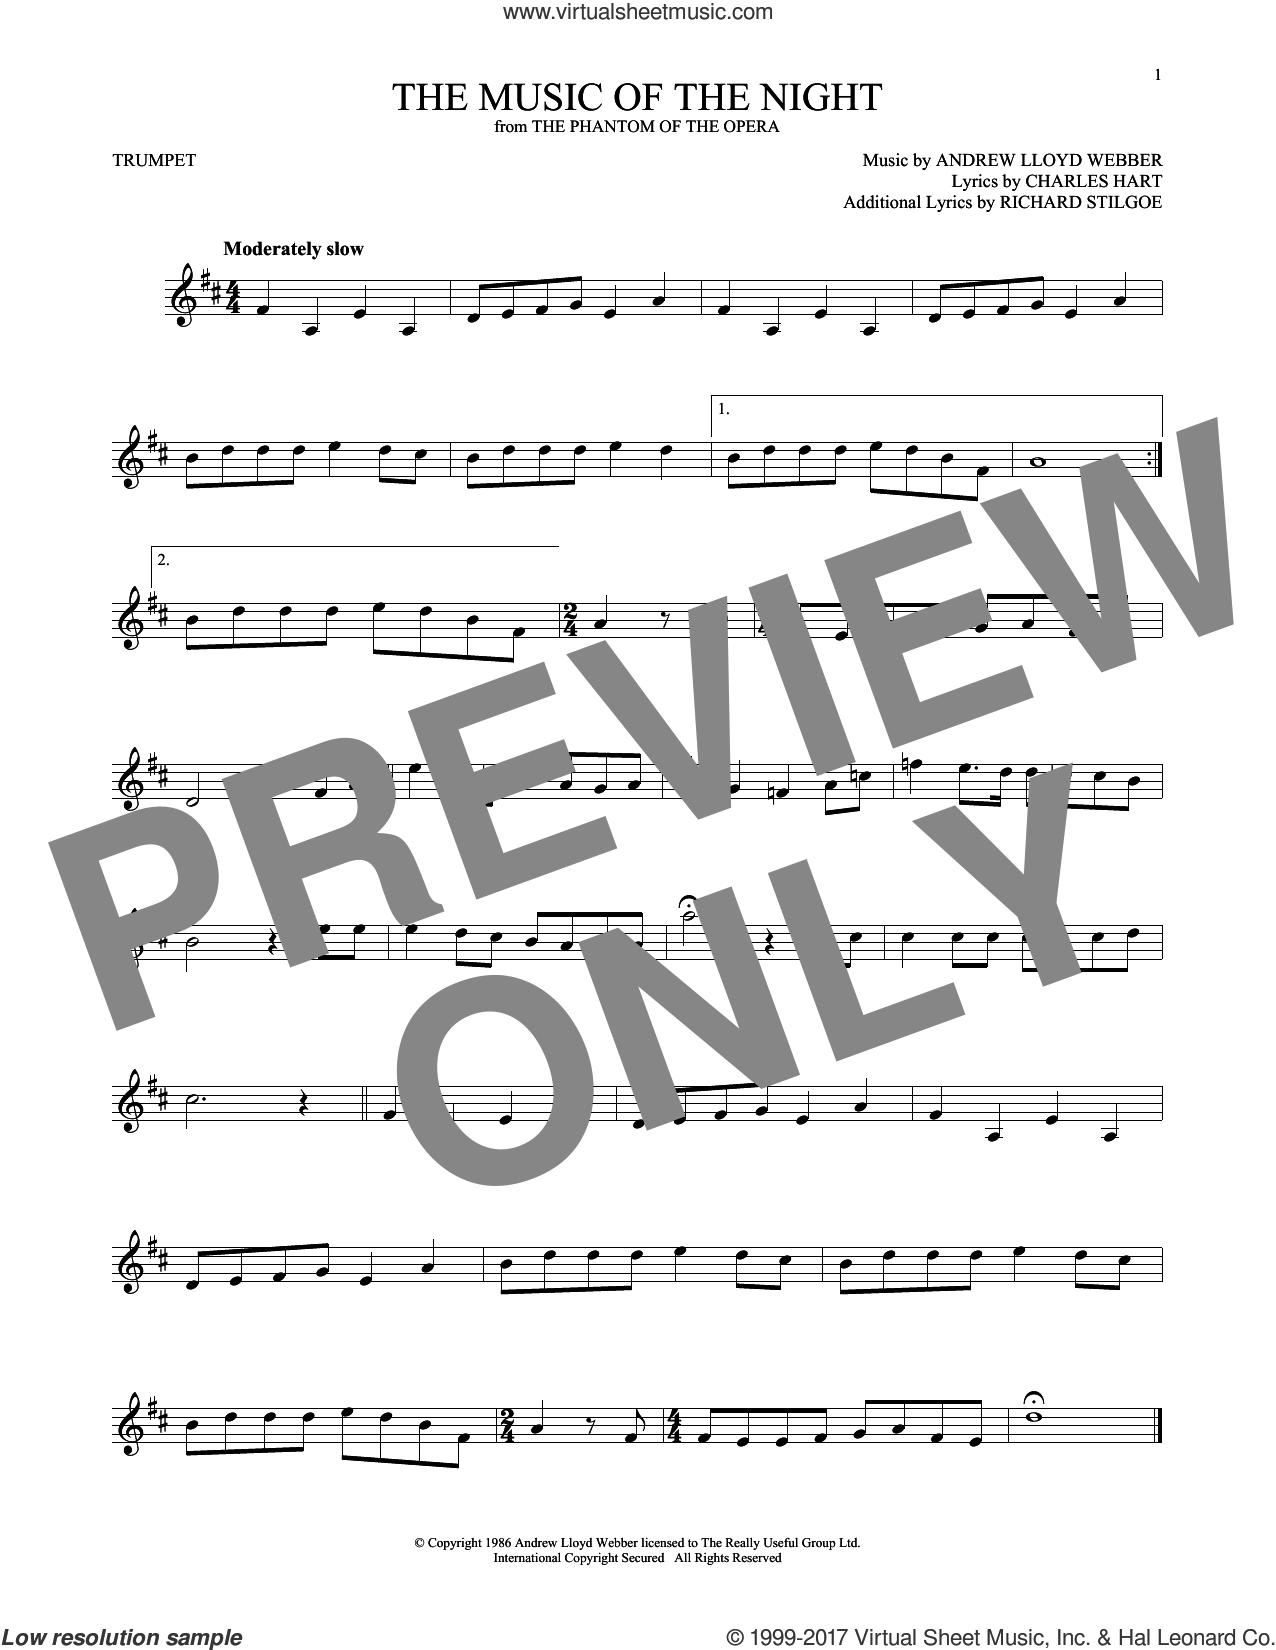 The Music Of The Night sheet music for trumpet solo by Andrew Lloyd Webber, David Cook, Charles Hart and Richard Stilgoe, intermediate skill level